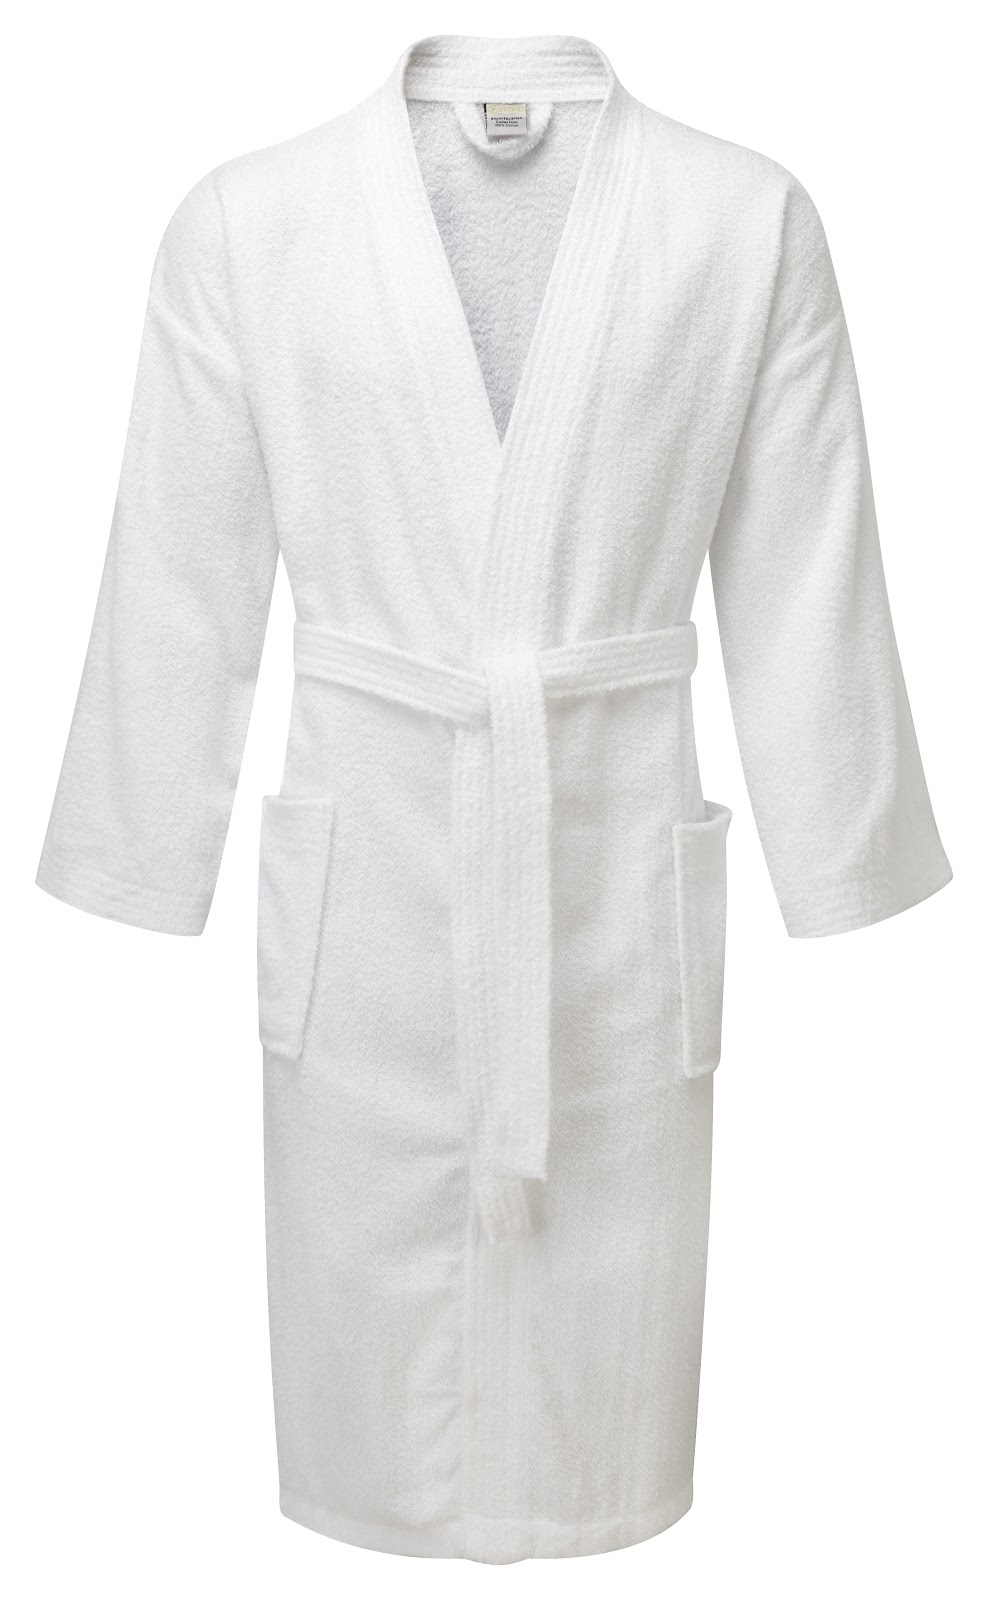 Bown of London, Established in offer a wide collection of Luxury Dressing Gowns and Bathrobes for men and women. Browse our collection and Buy Online Today.